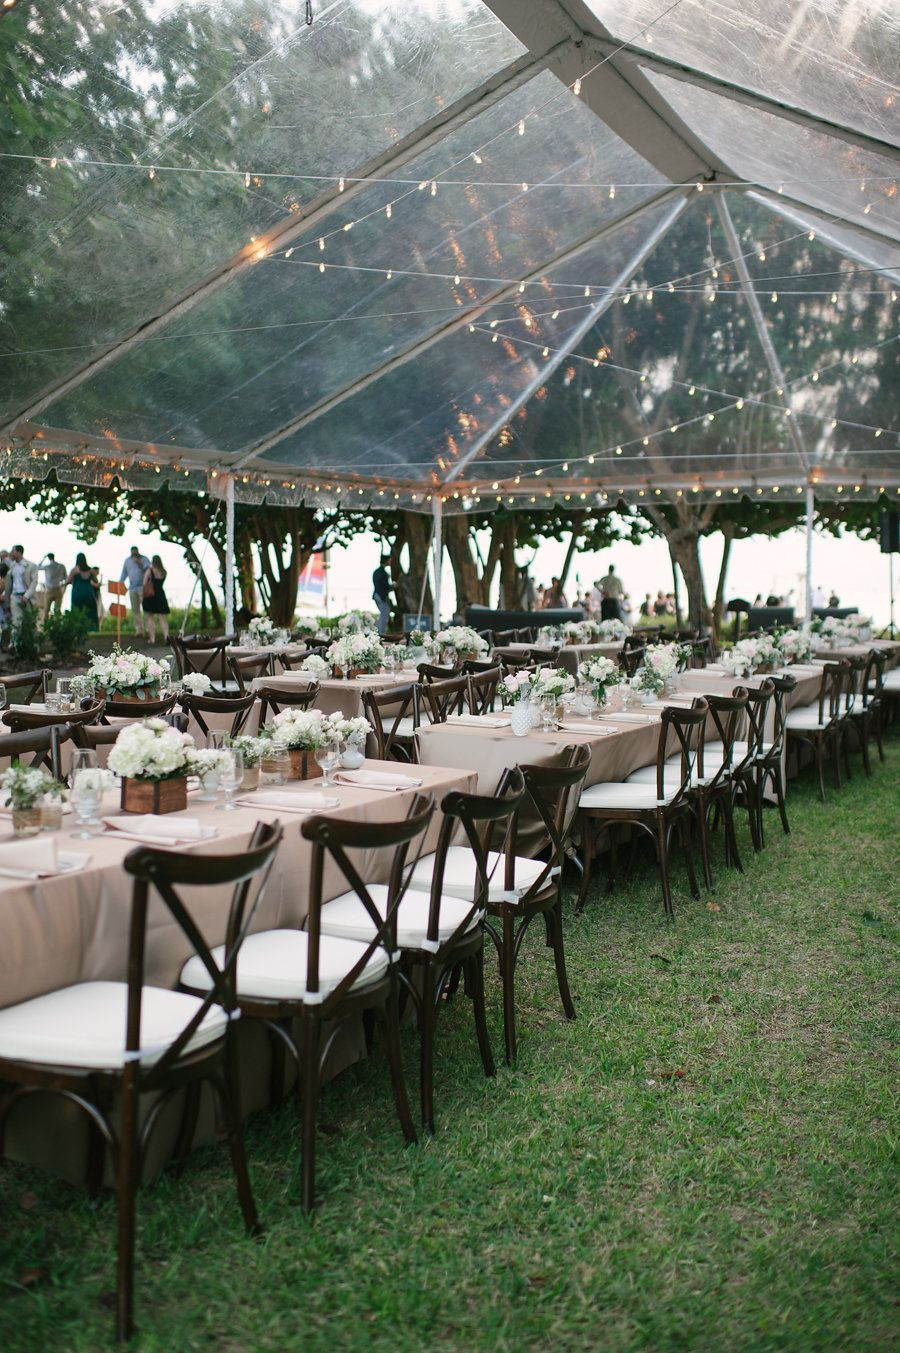 Best ideas about Backyard Wedding Rentals . Save or Pin Clear Wedding Tent Rental Now.